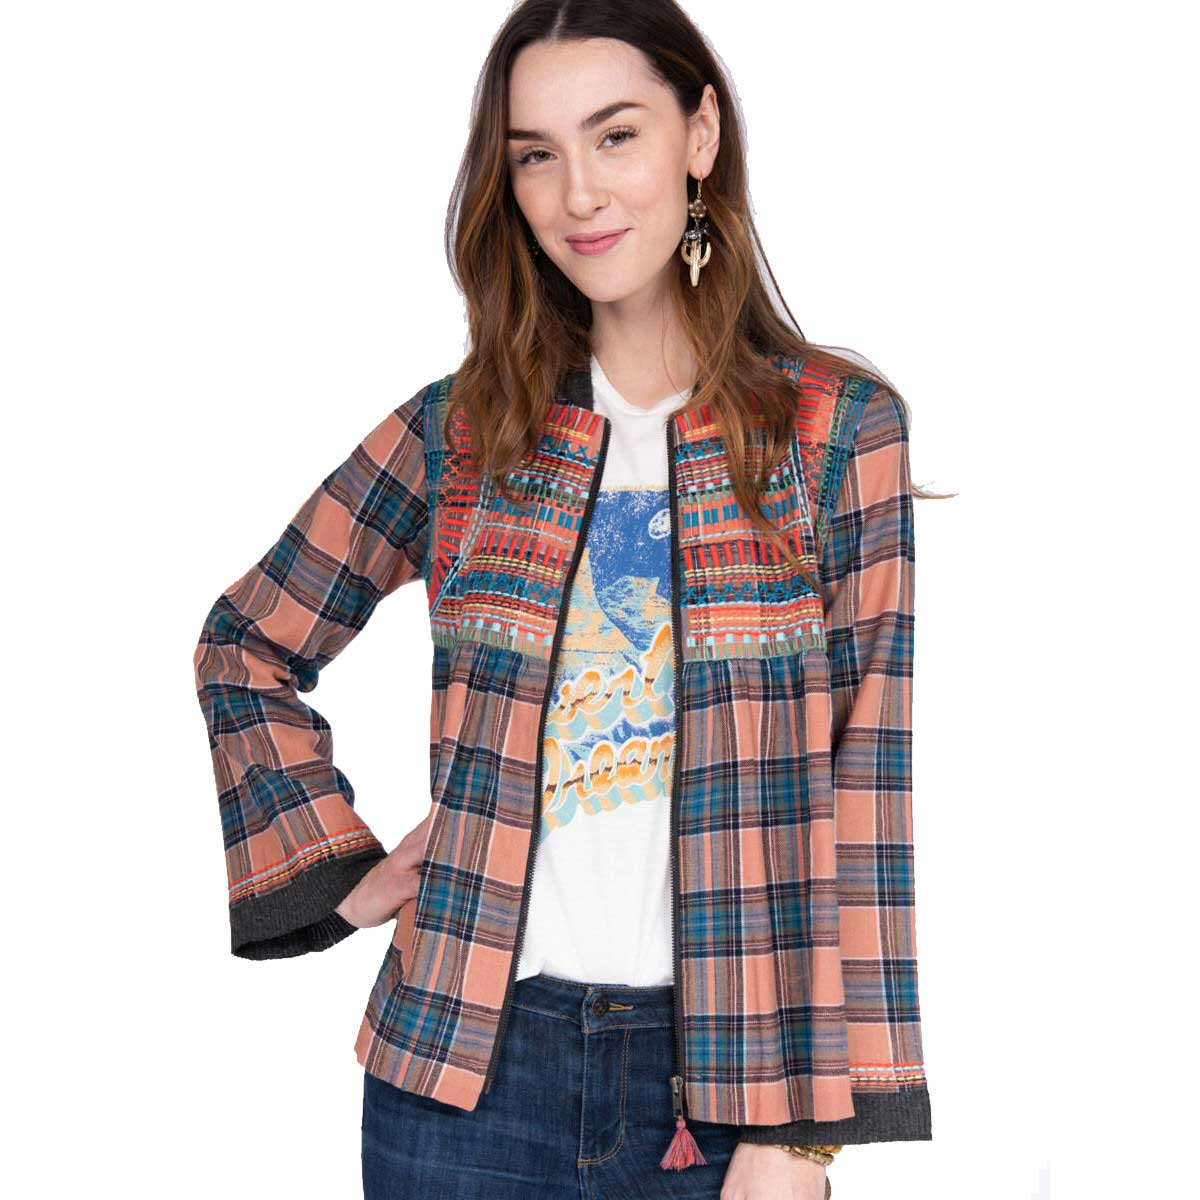 Ivy Jane Zip of Colors Plaid Jacket